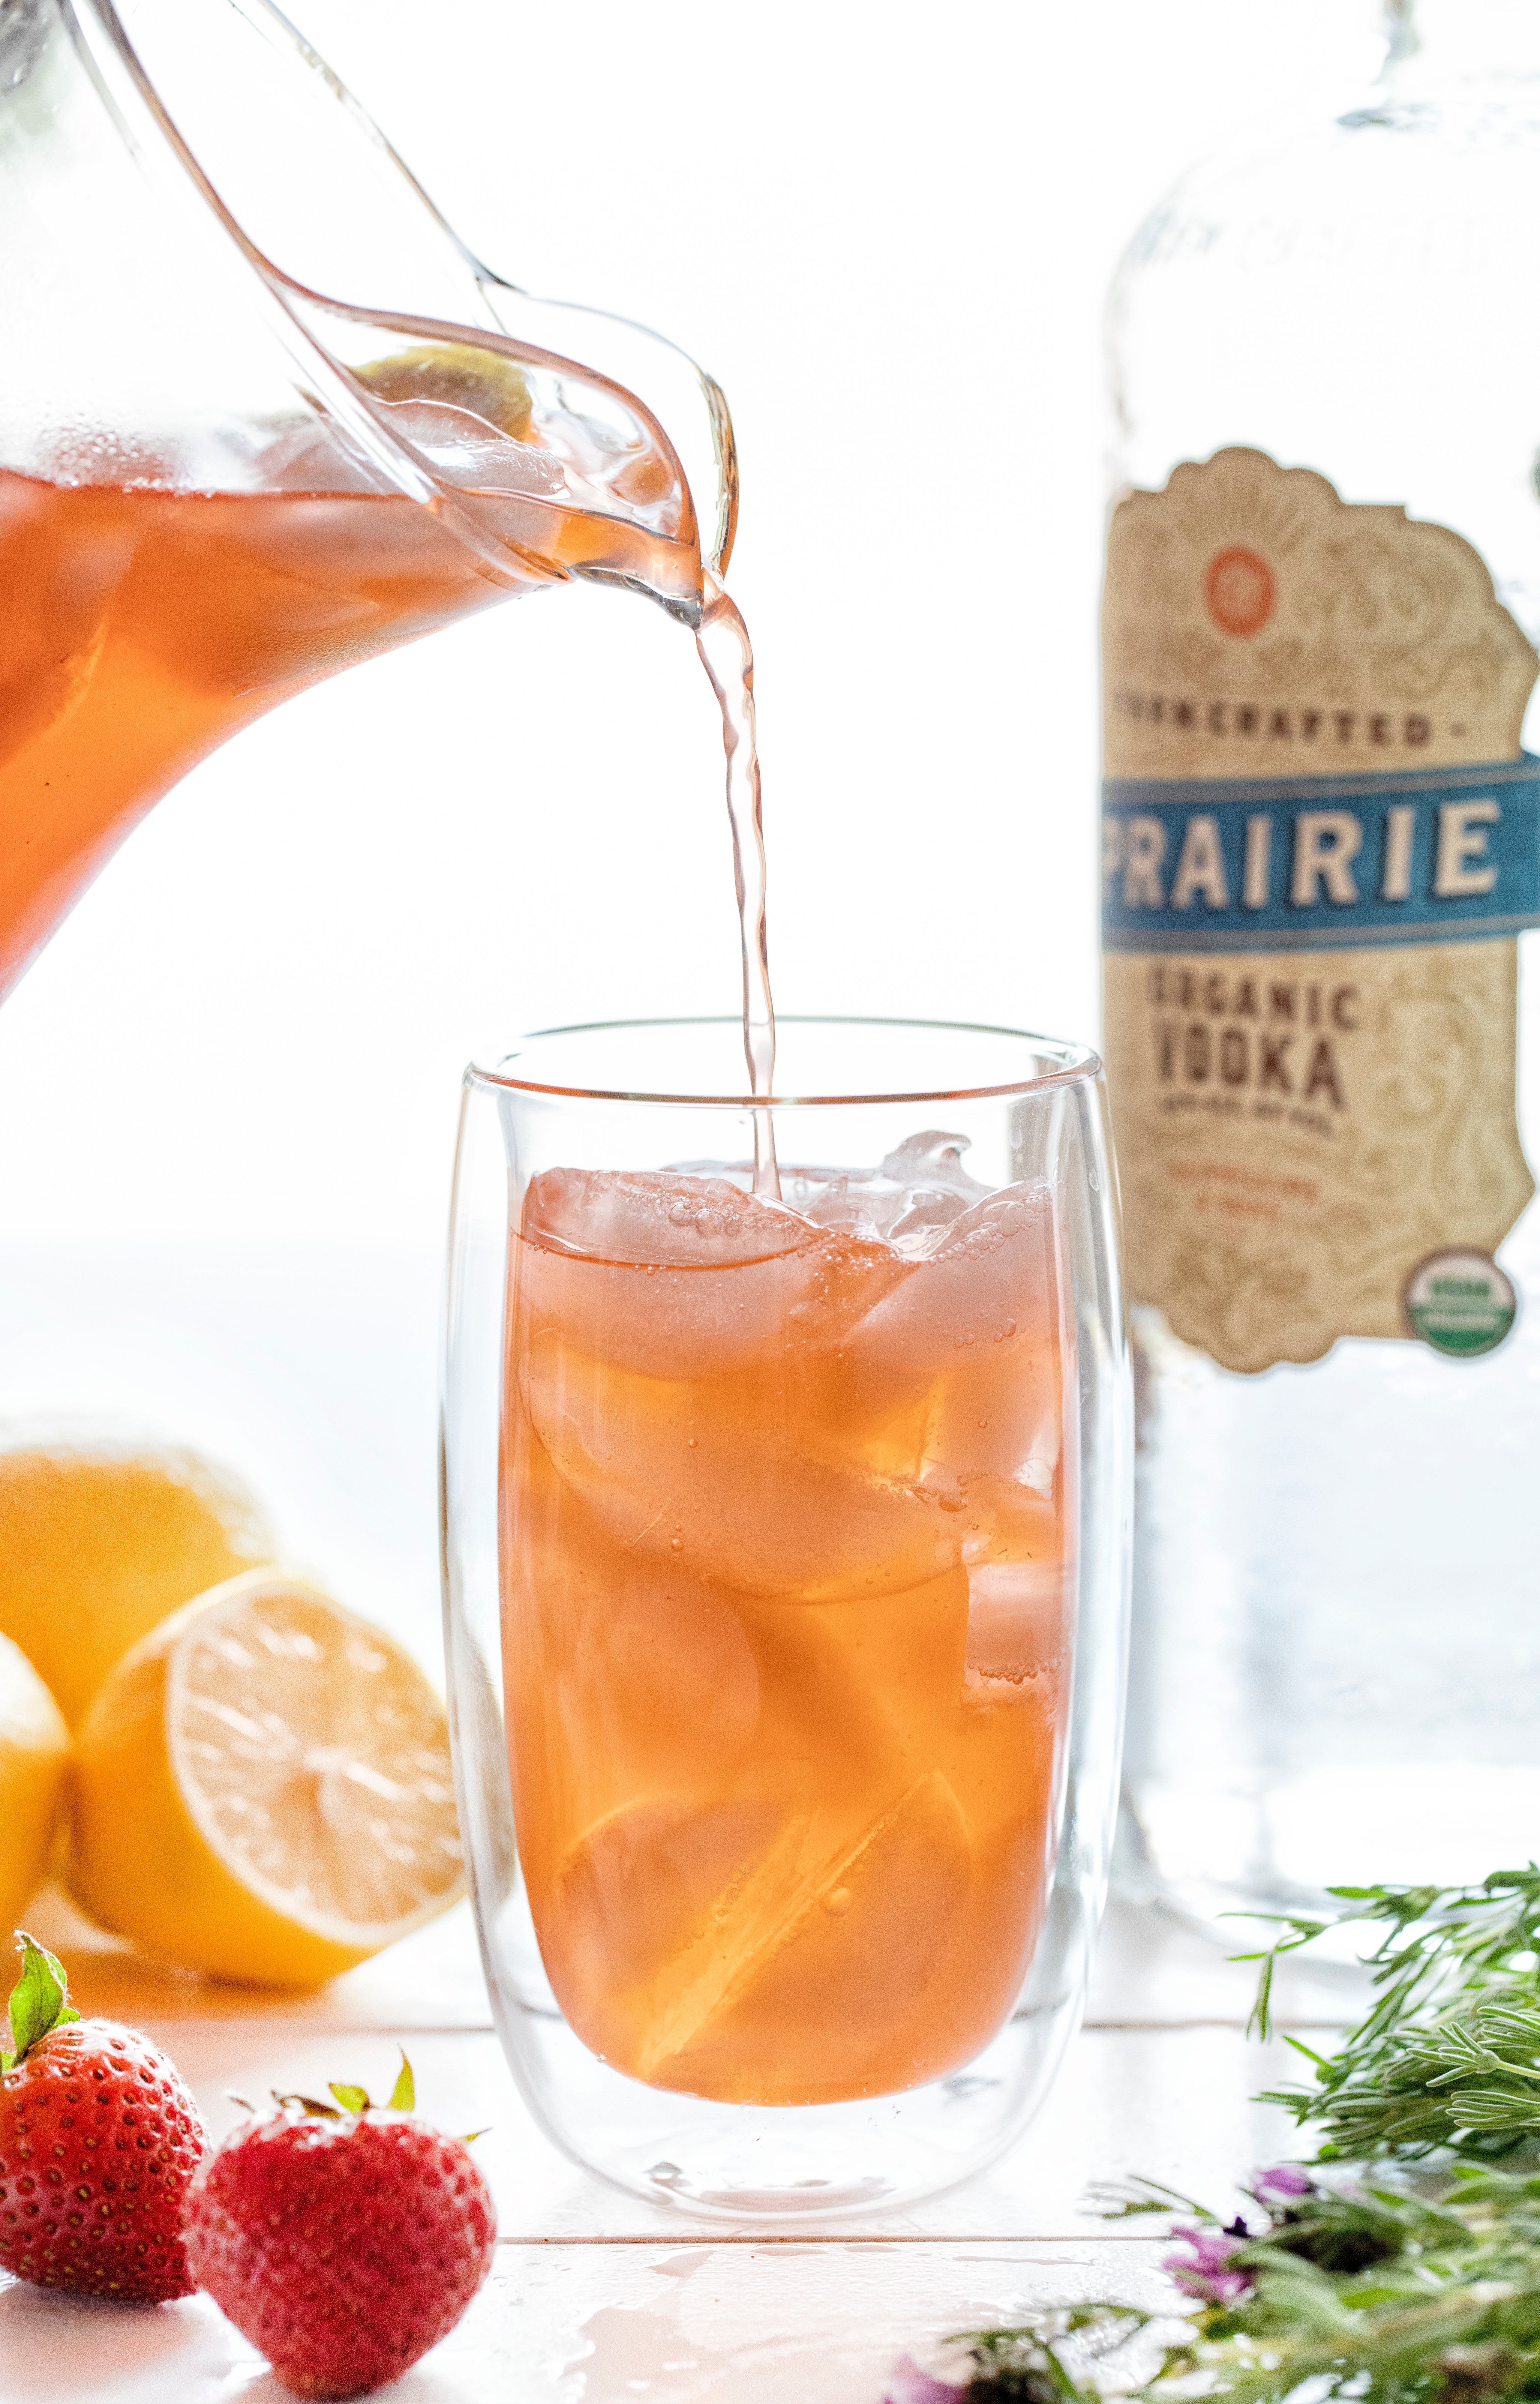 https://iambaker.net/wp-content/uploads/2019/07/straw-lemon-vodka.jpg